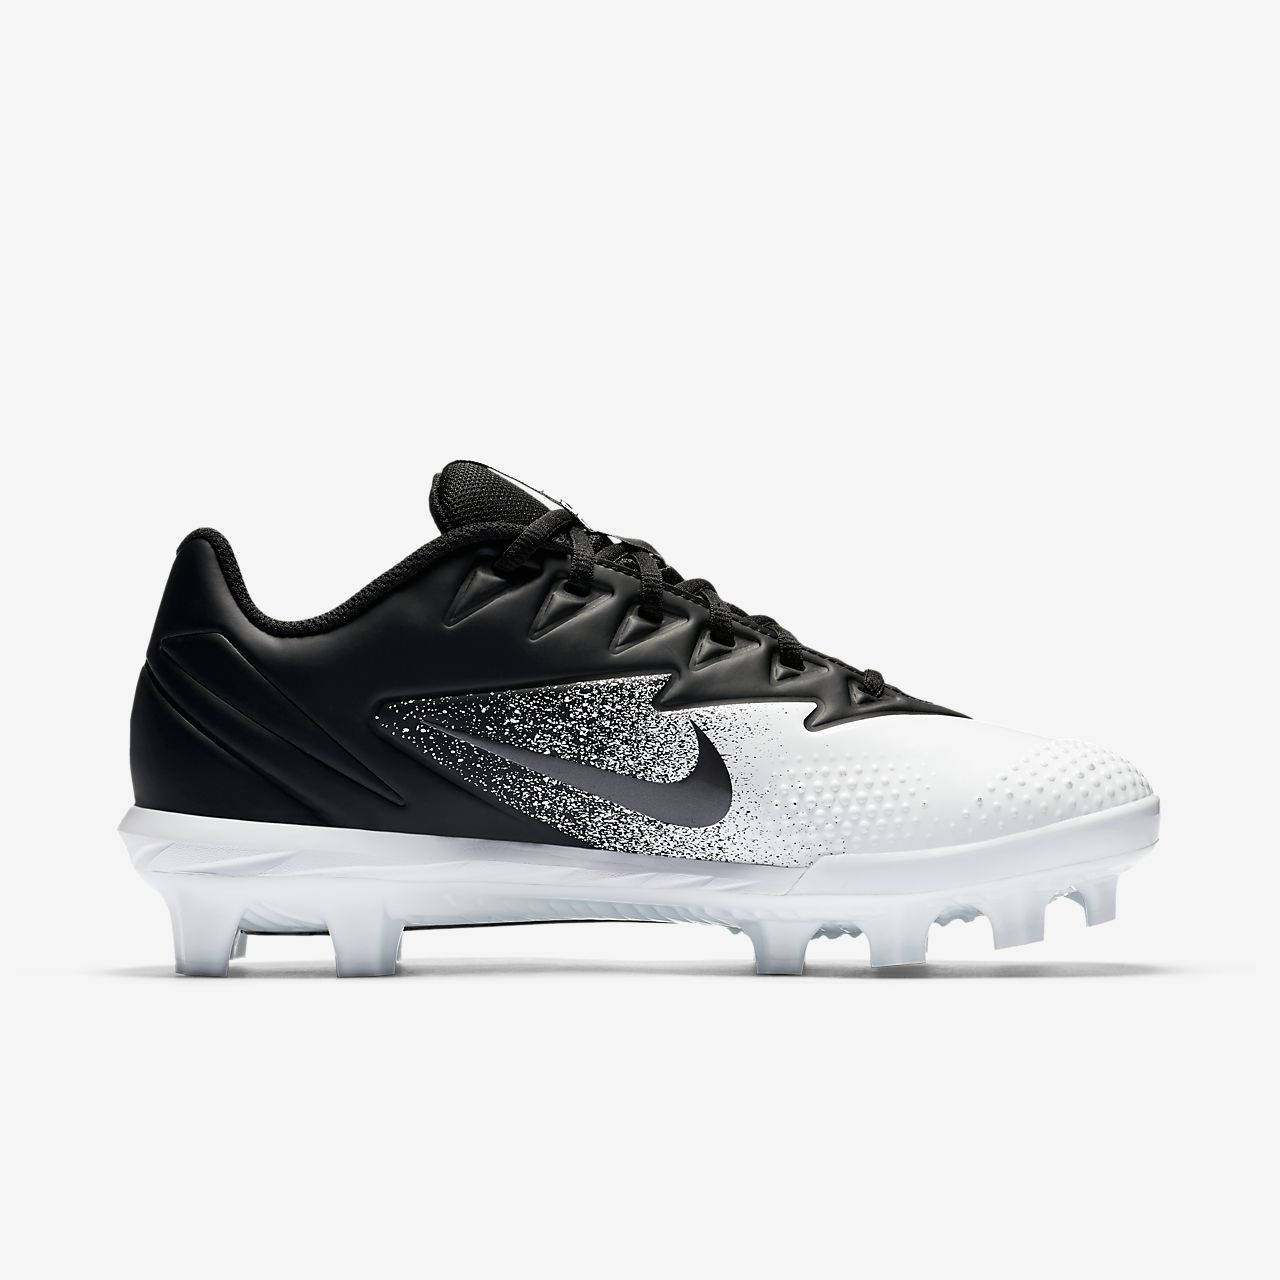 ... Nike Vapor Ultrafly Pro MCS Men's Baseball Cleat